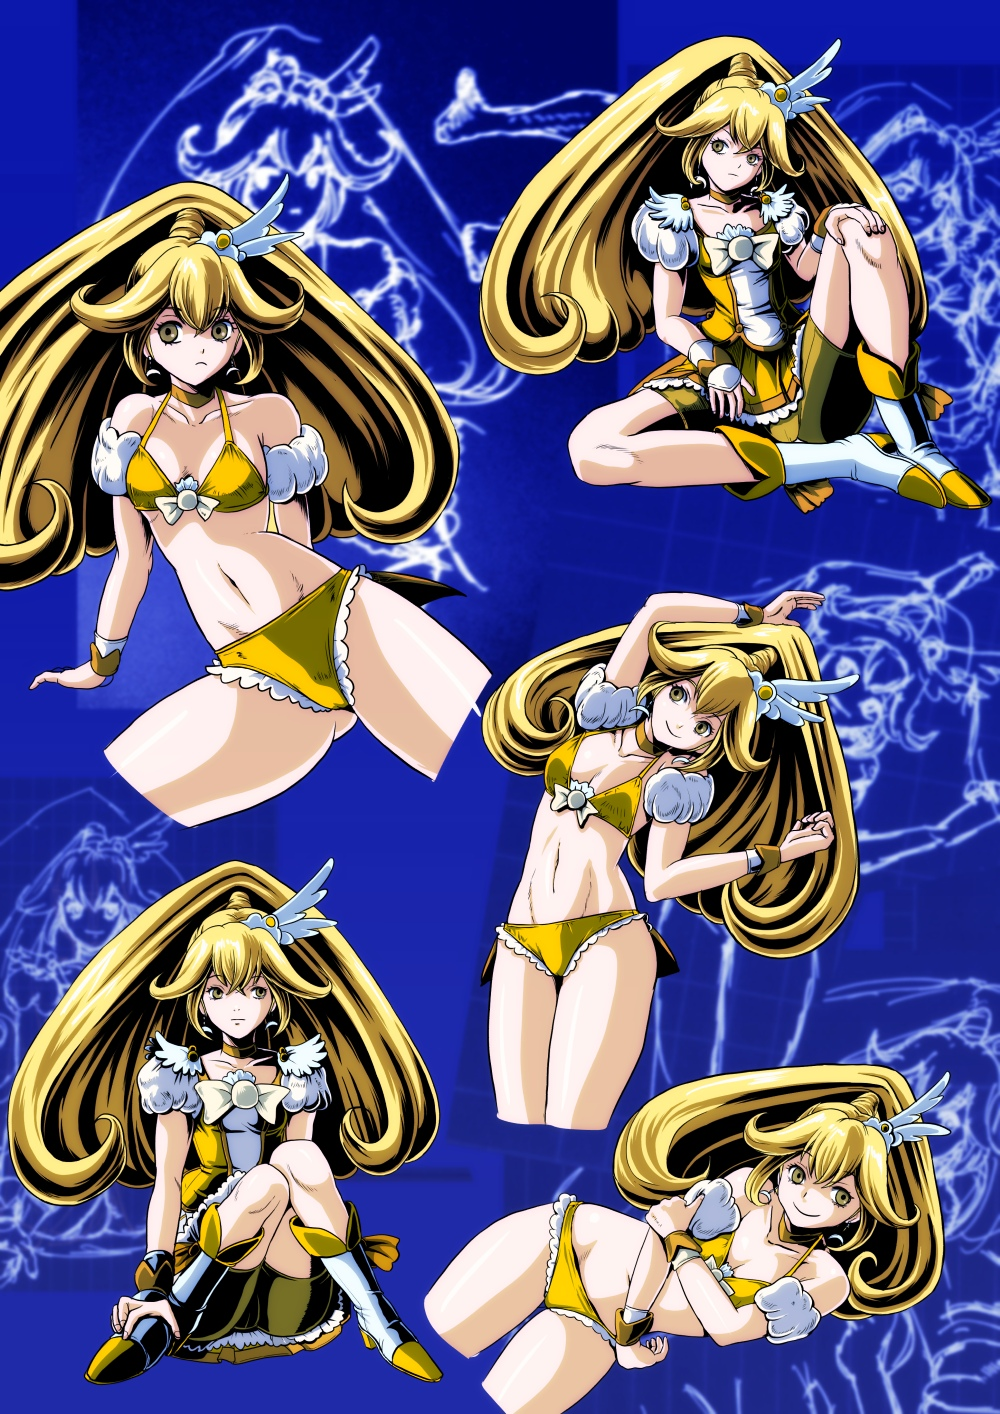 alternate_costume bike_shorts bikini blonde_hair blue_background boots bowtie brooch choker cure_peace dress frown highres jewelry kise_yayoi long_hair magical_girl minakaya multiple_persona precure shorts_under_skirt sitting skirt smile_precure! swimsuit wrist_cuffs yellow_bikini yellow_dress yellow_eyes